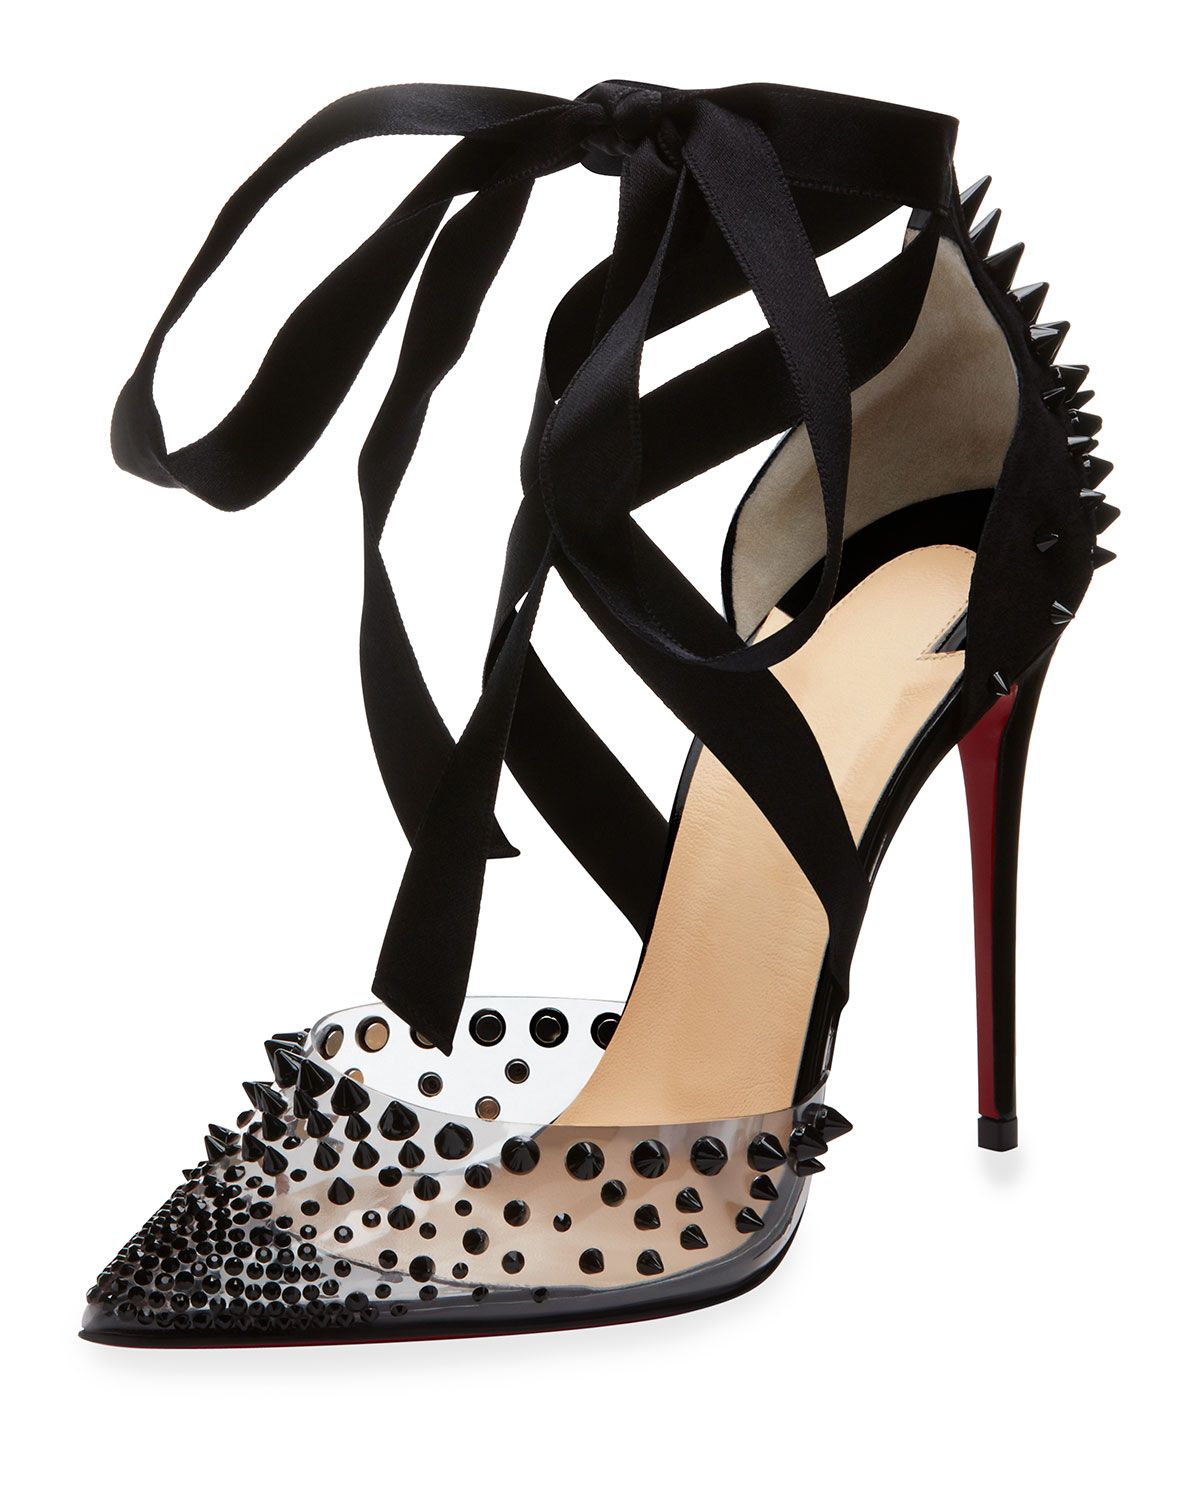 a82a41e4320 Christian Louboutin Mechante Reine Spikes Red Sole Pumps in 2019 ...